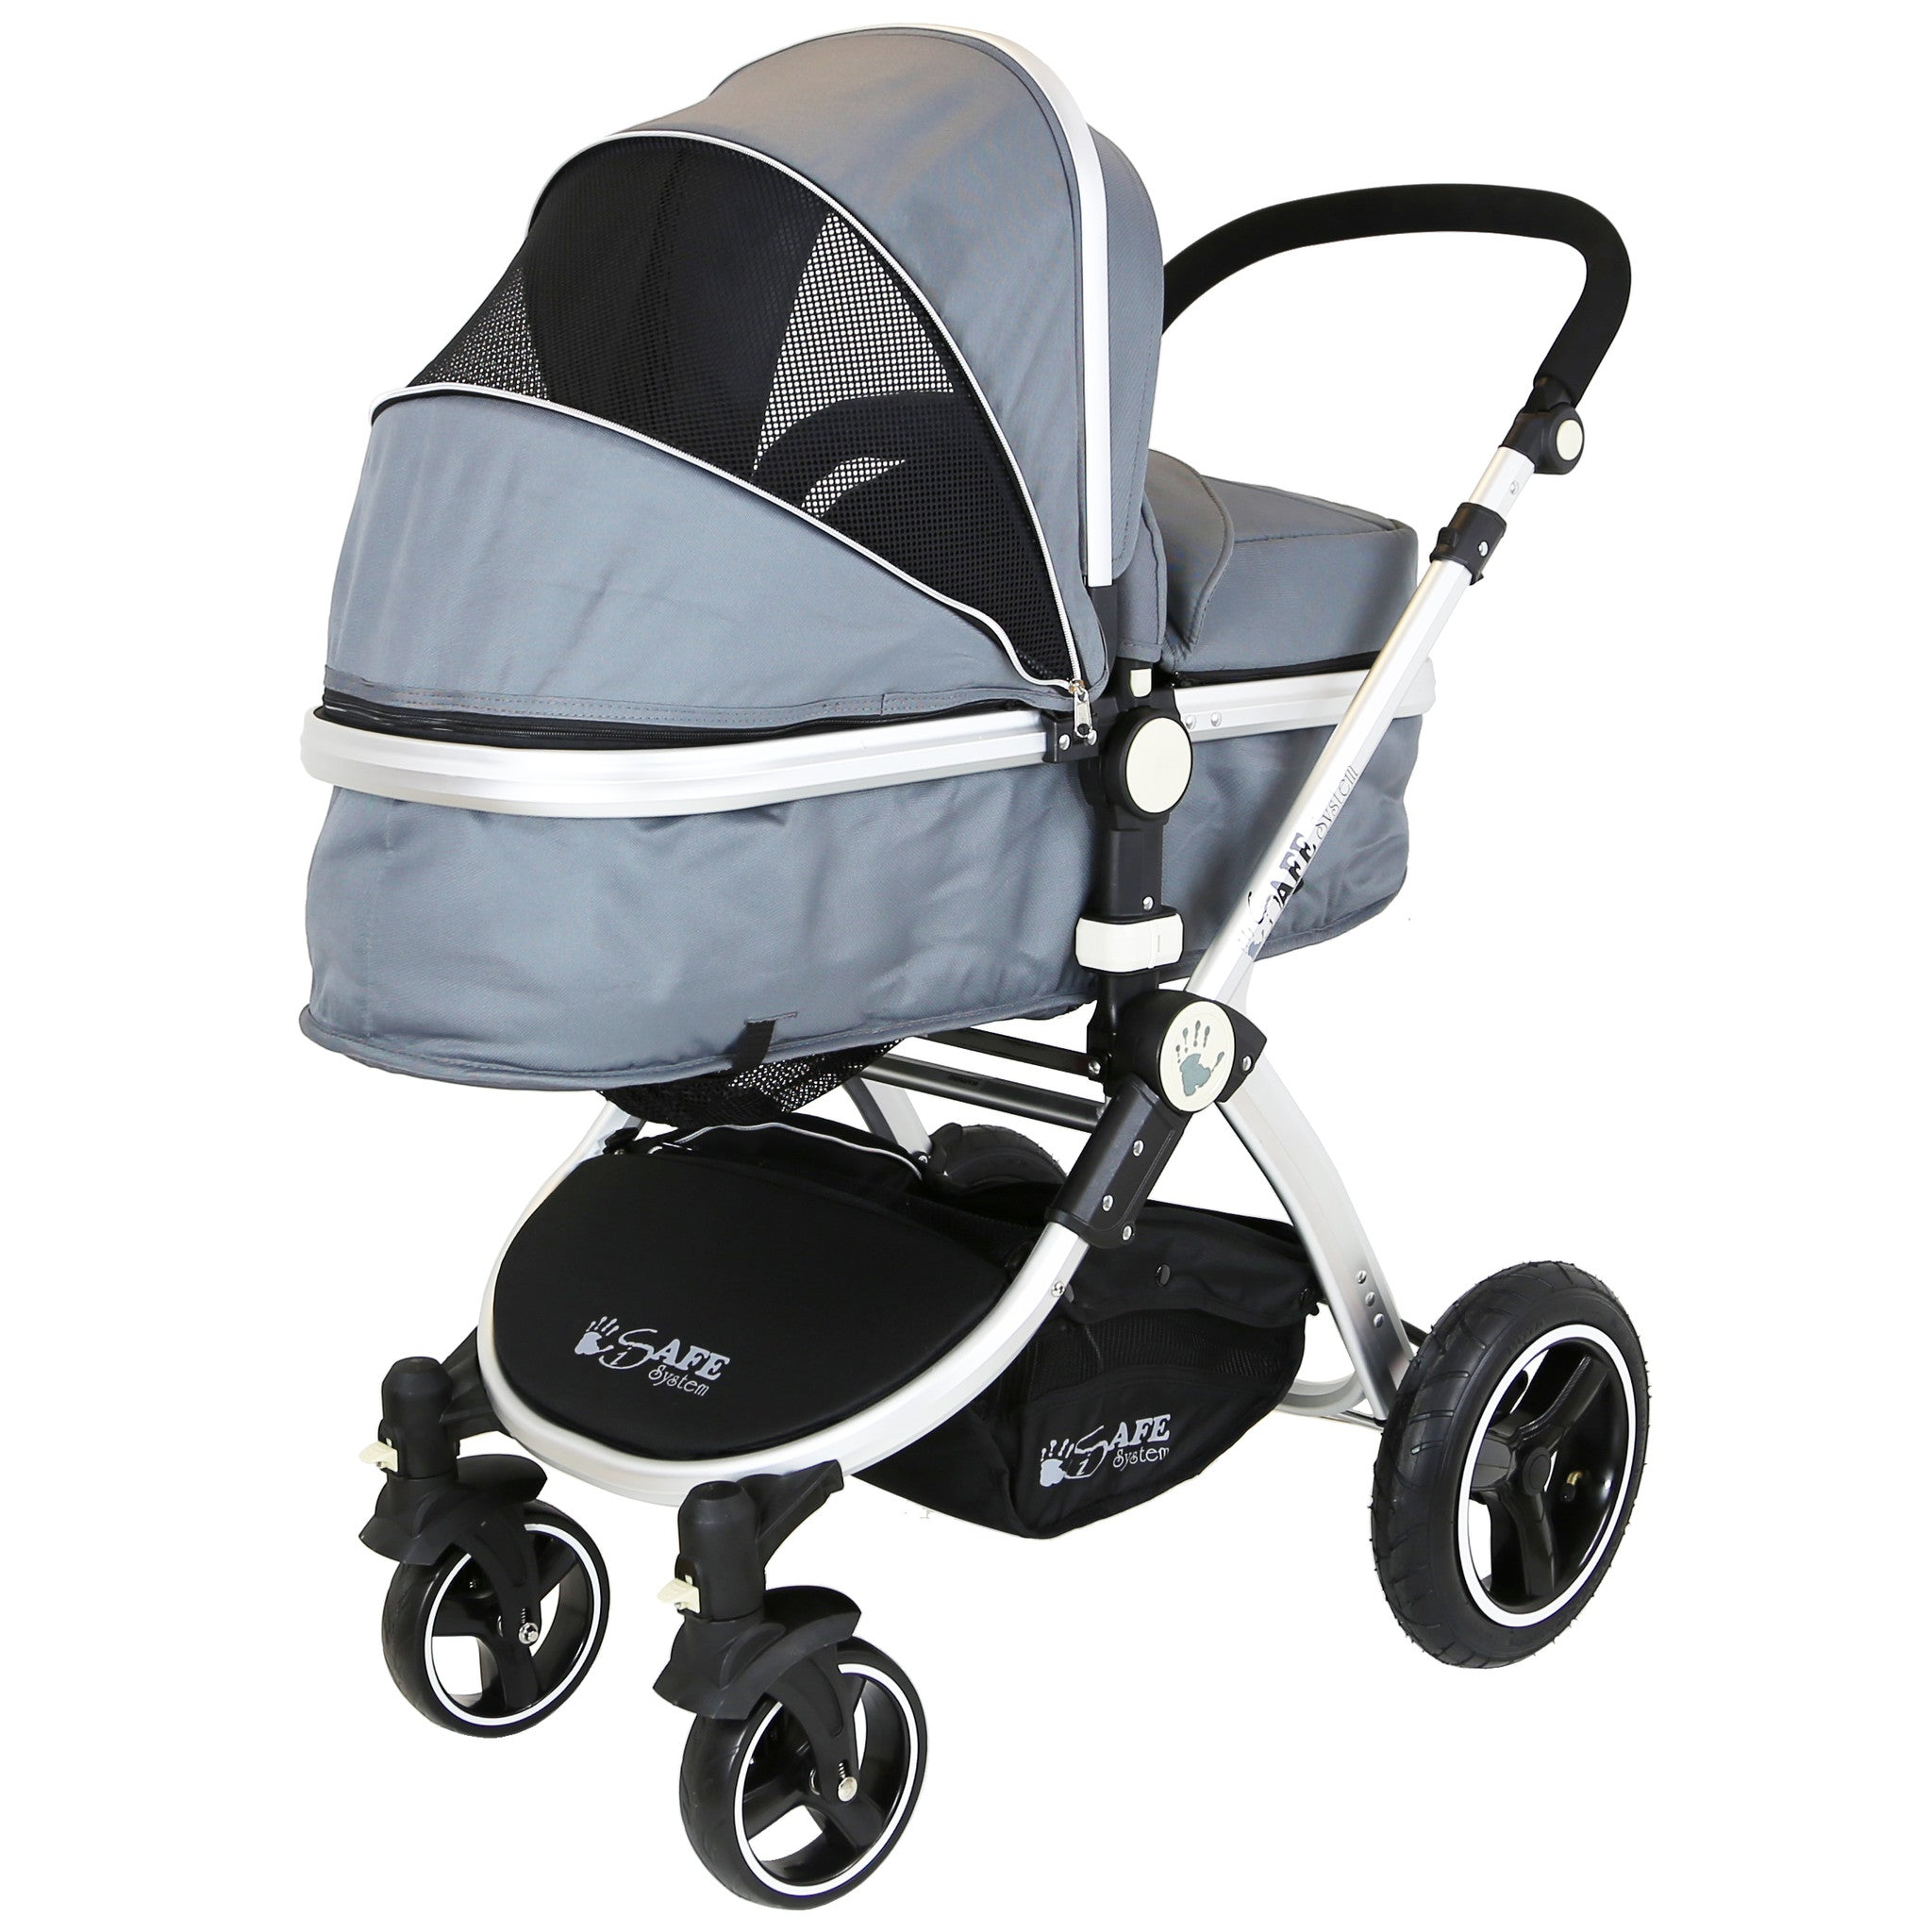 Isafe Travel System Reviews